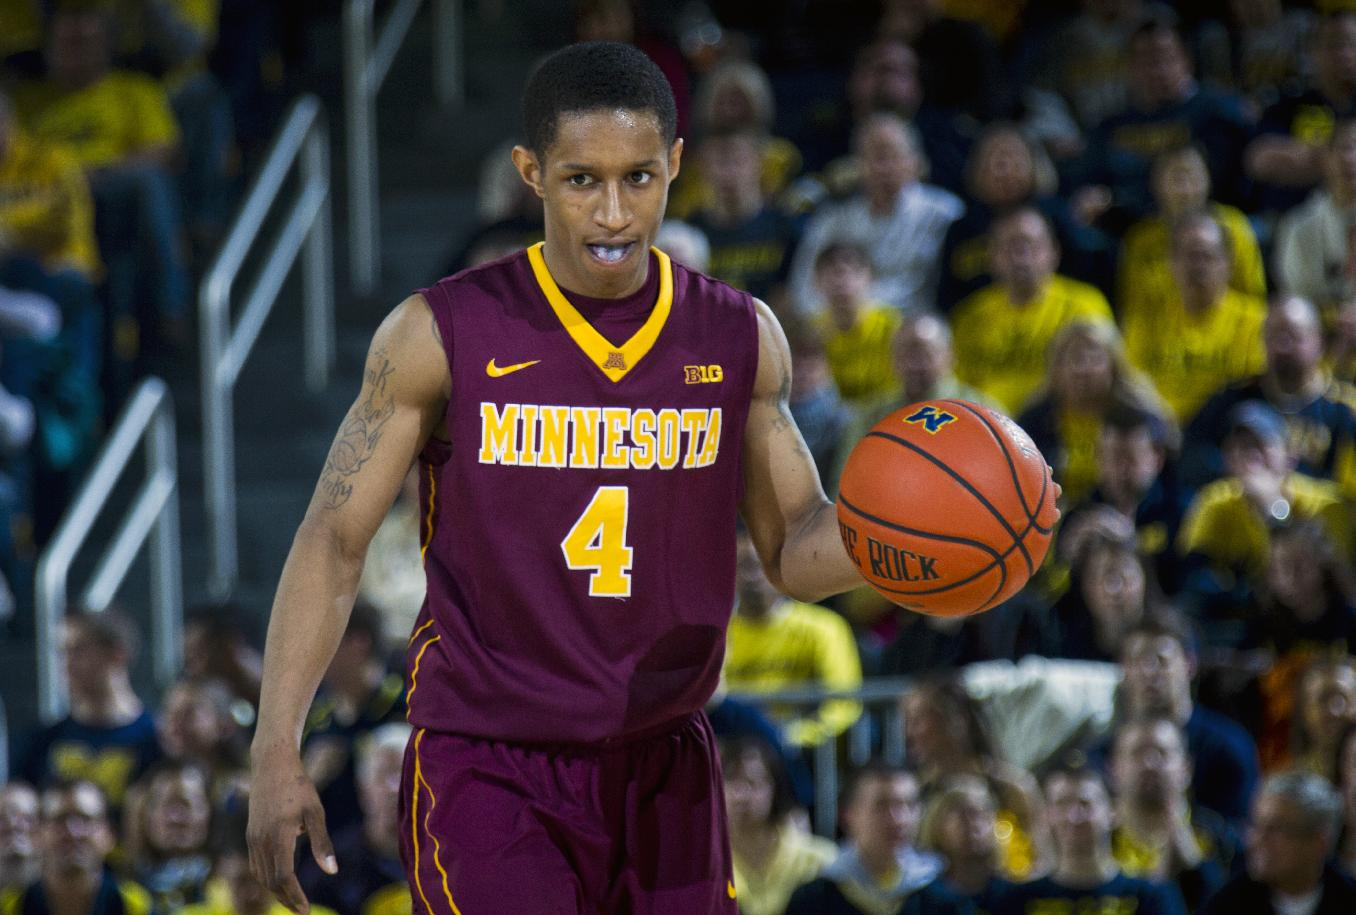 In this March 1, 2014 file photo, Minnesota guard Deandre Mathieu (4) dribbles the ball in the second half of an NCAA college basketball game against Michigan in Ann Arbor, Mich. Minnesota enters the Big Ten tournament needing a win or two to secure that elusive NCAA tournament berth, and the fate of the Gophers will rest largely on the small shoulders of Mathieu